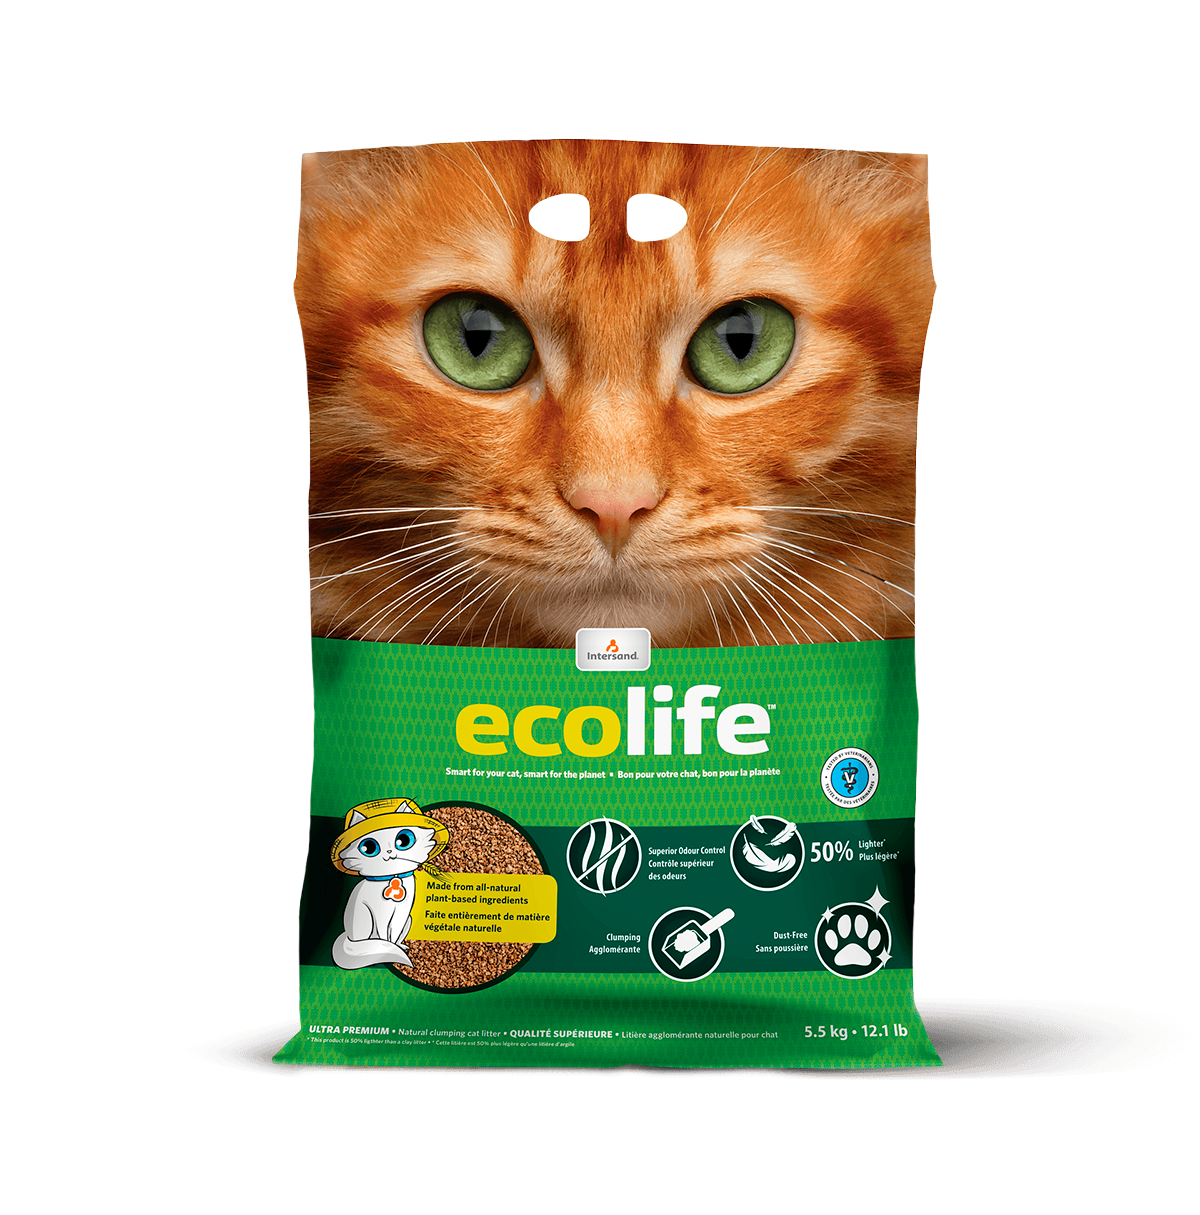 Ecolife — Biodegradable clumping litter